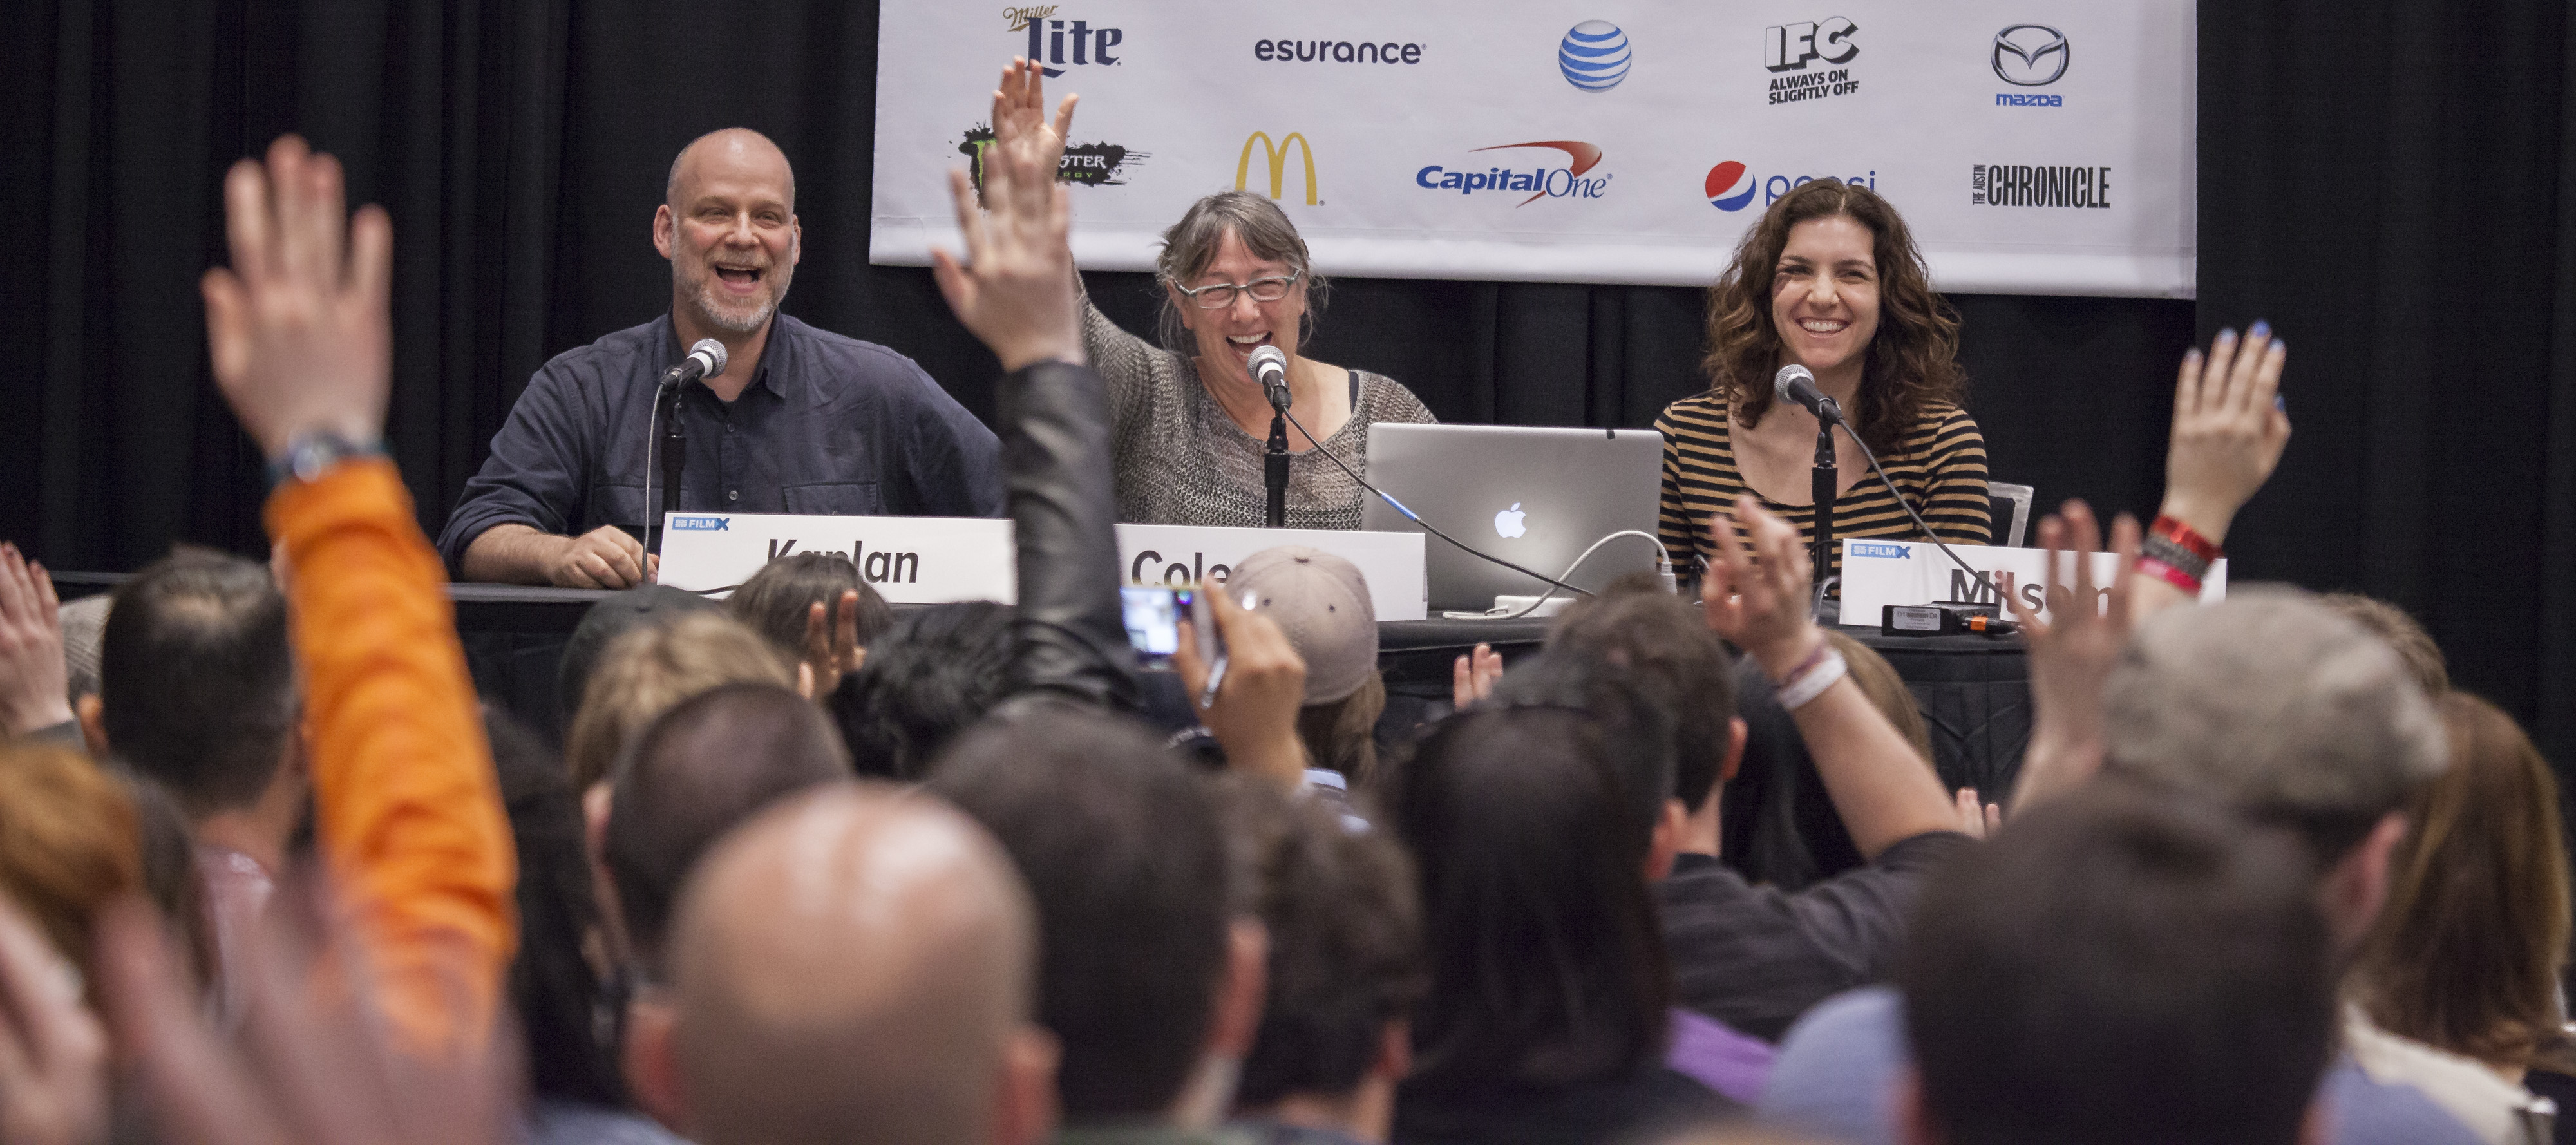 Audience at SXSW Conference session 2015. Photo by Sam Burkardt